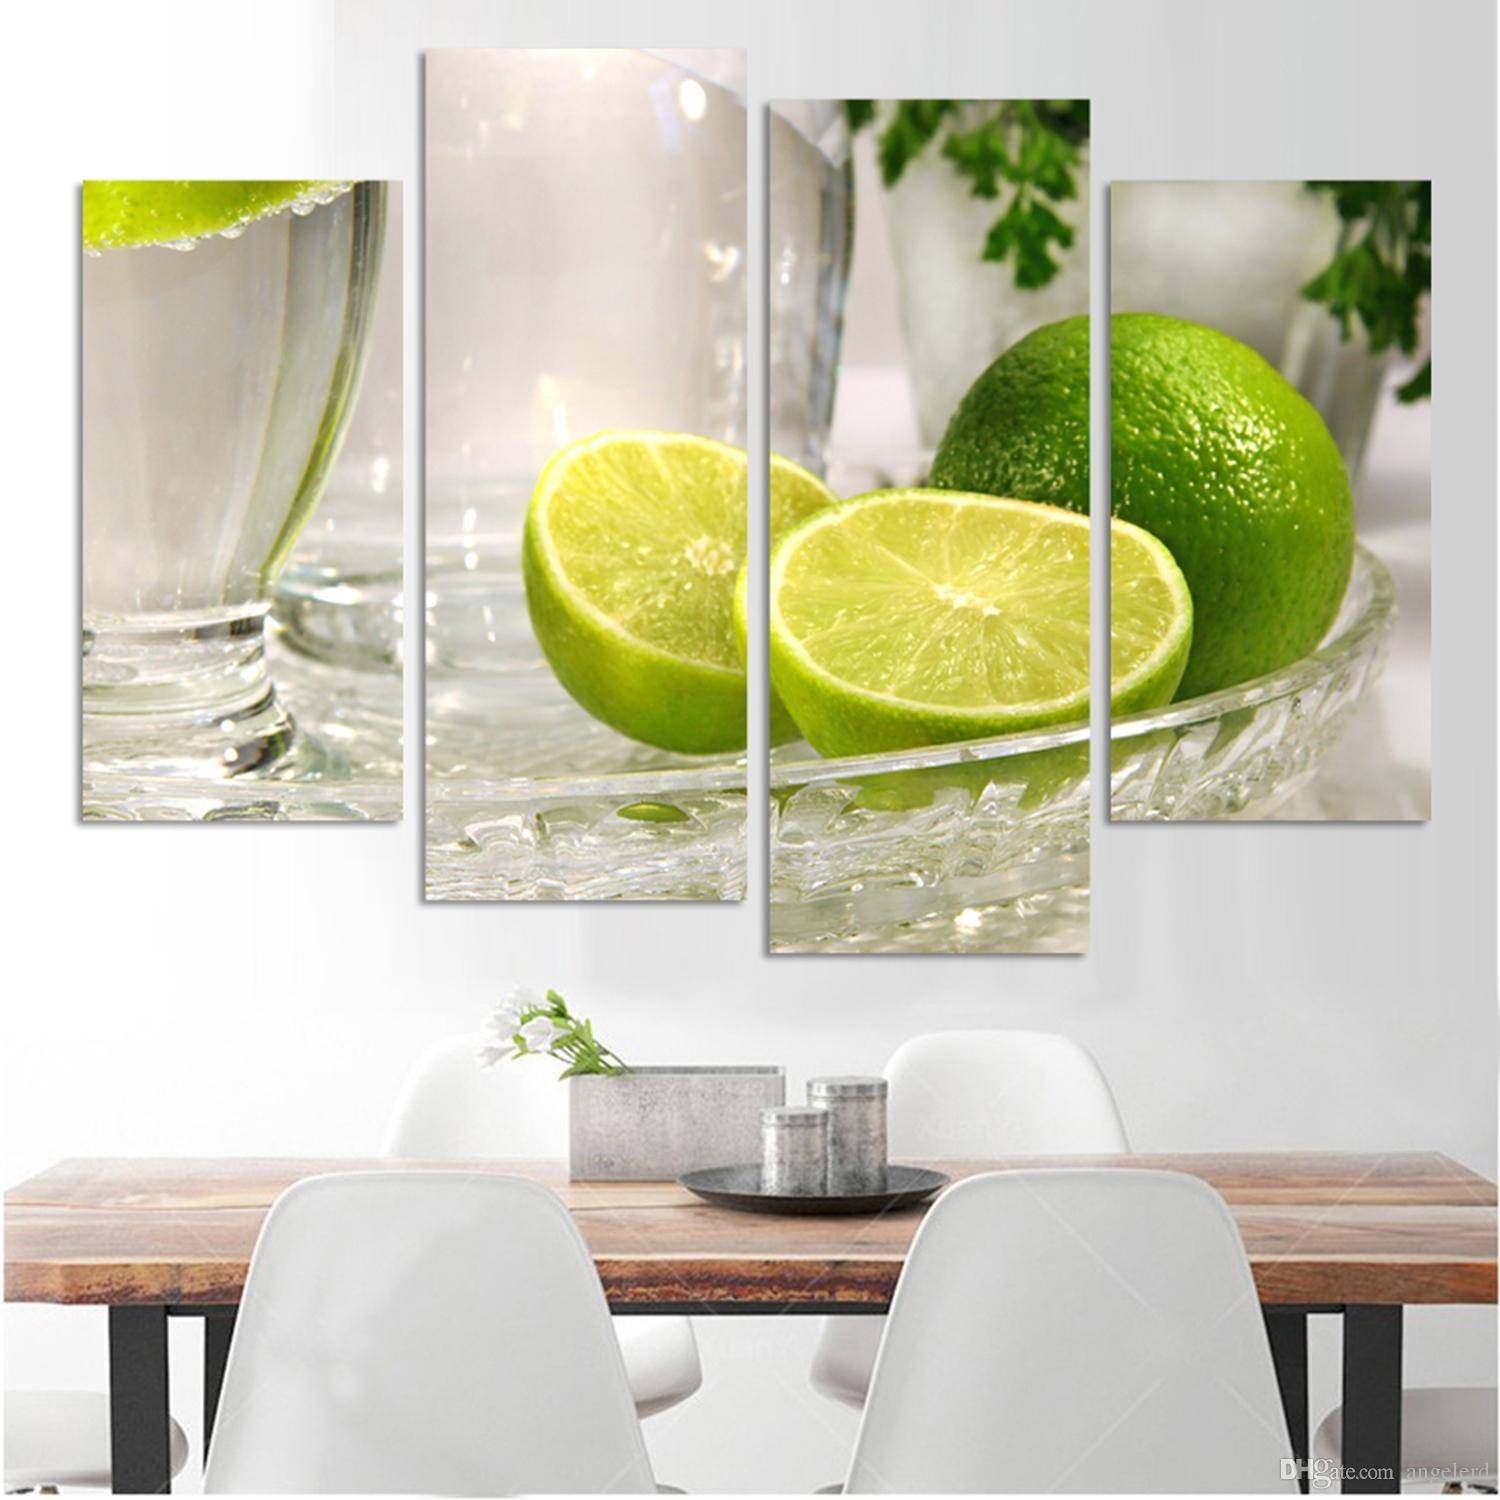 Best 4 Panels Lemon Fruit Green Canvas Painting Modern Wall With Regard To Most Popular Green Canvas Wall Art (View 6 of 20)